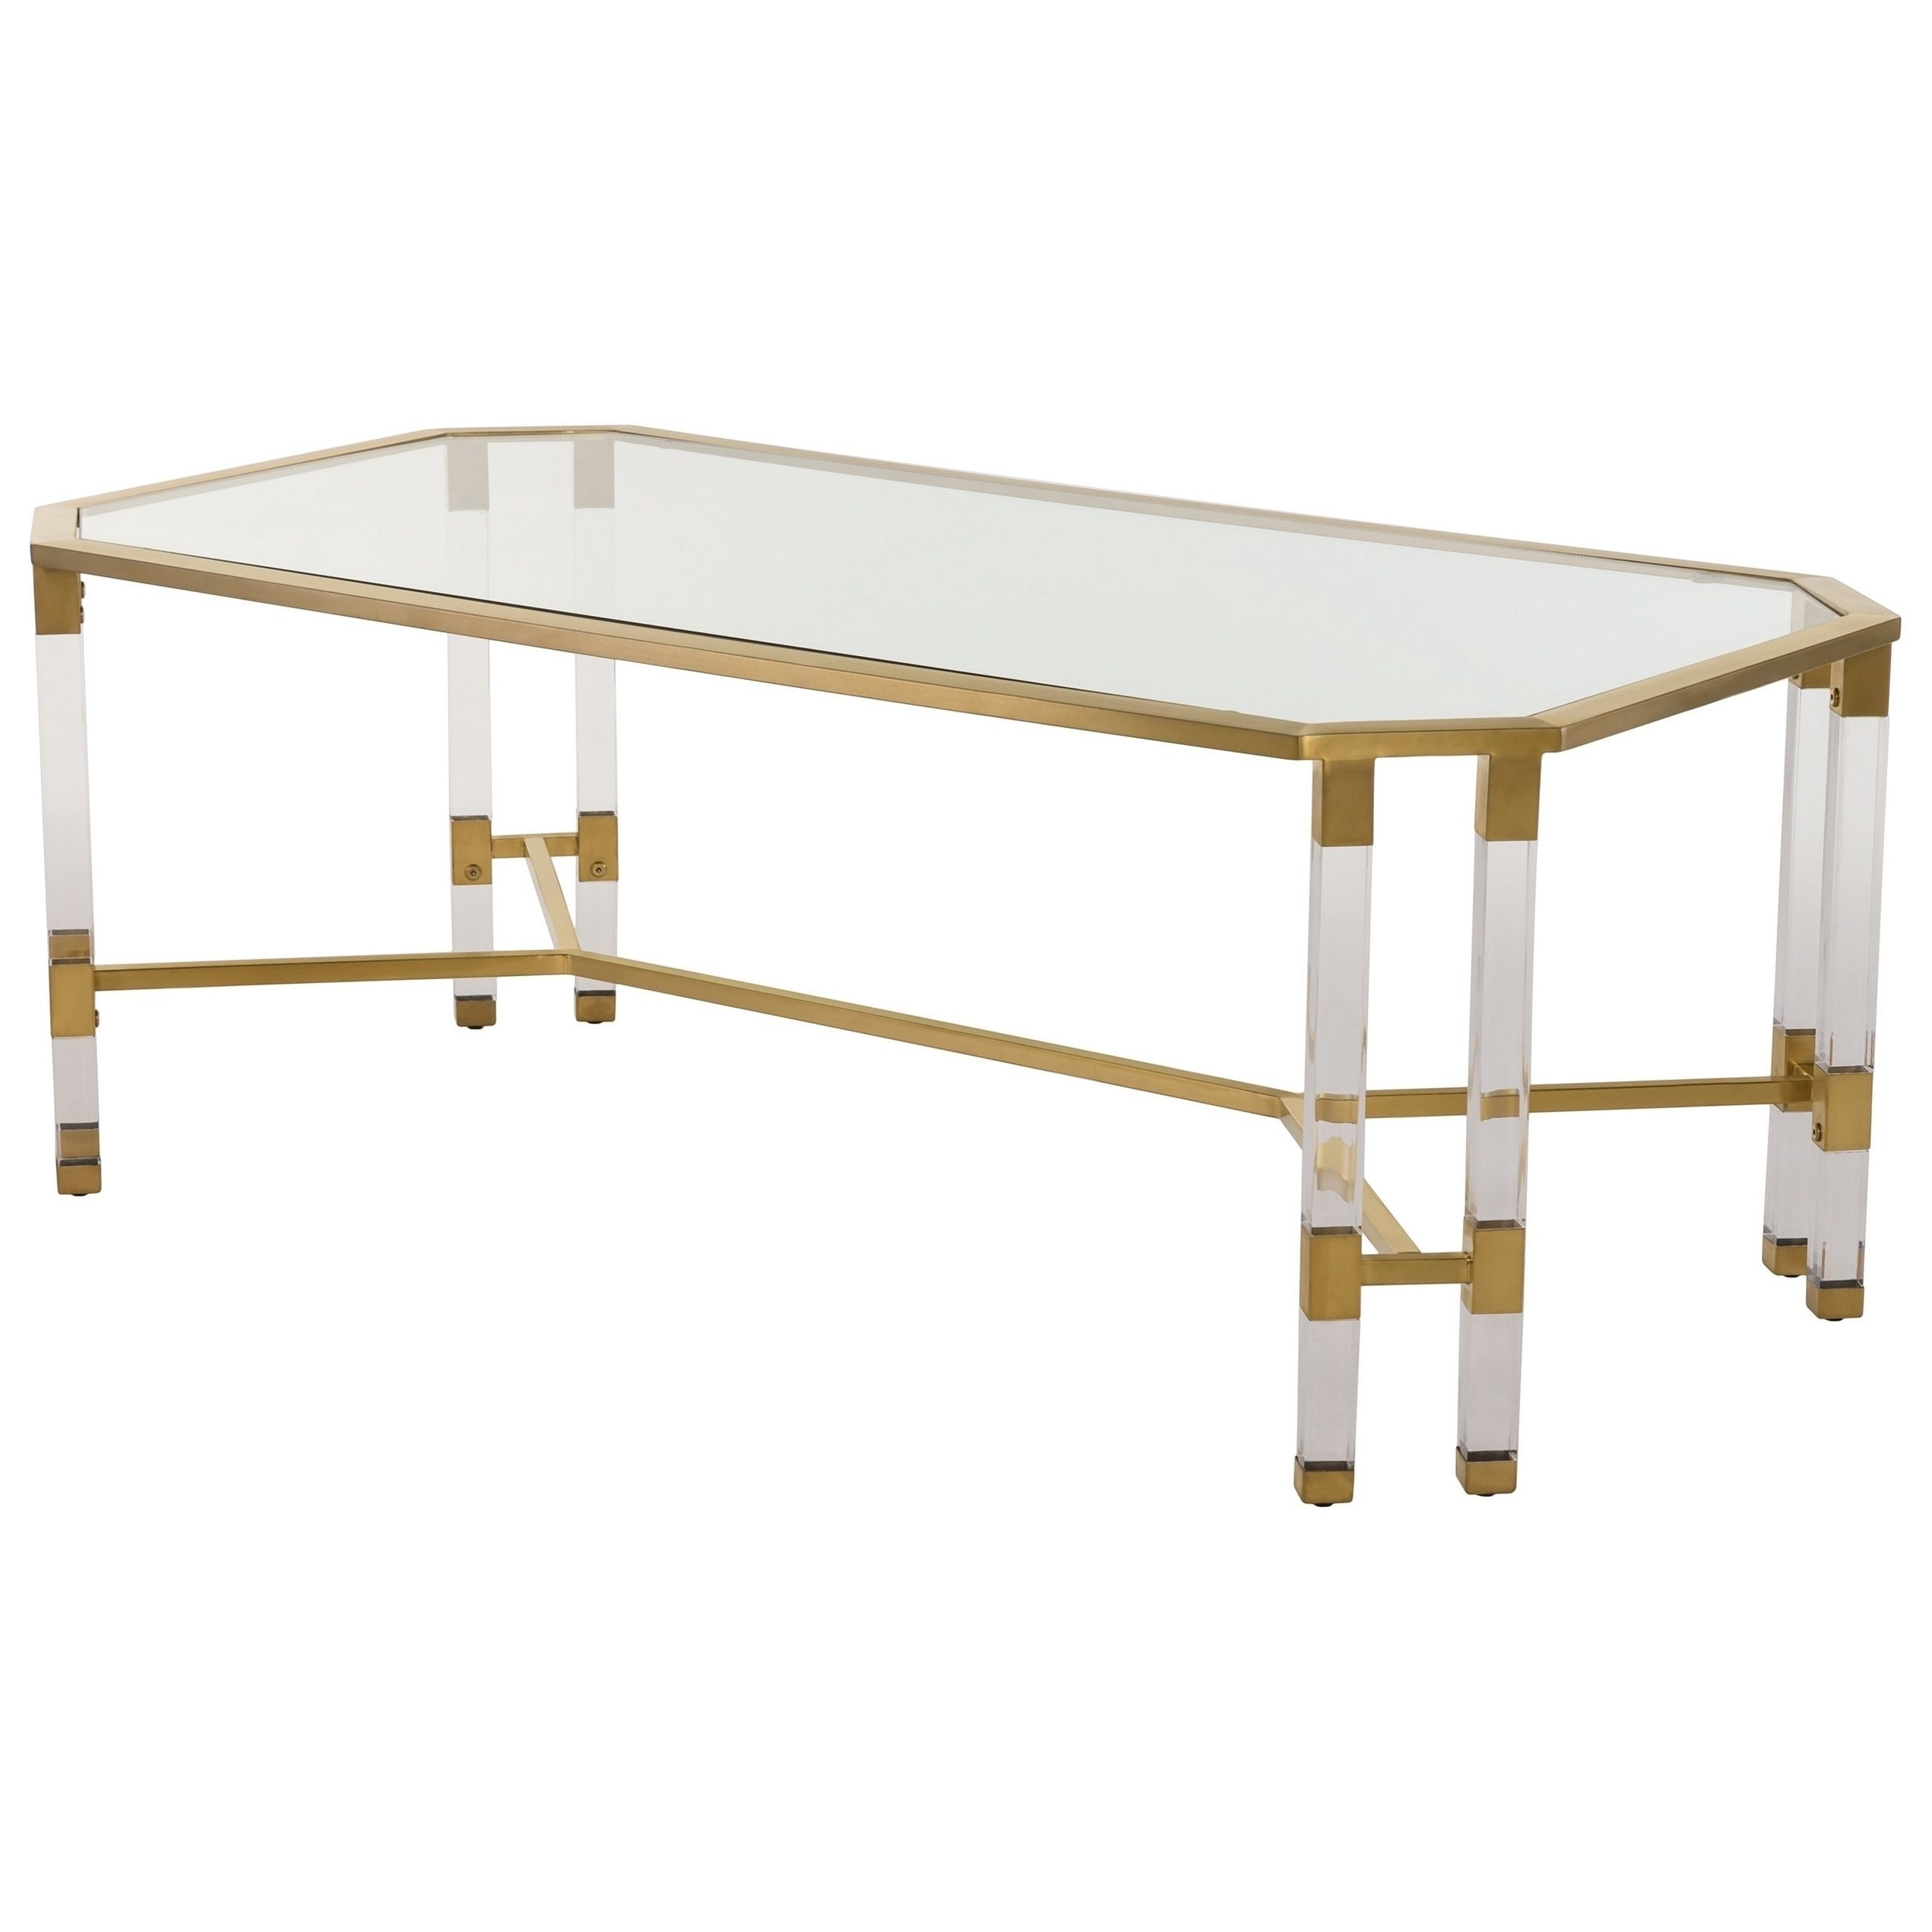 Well Liked Acrylic & Brushed Brass Coffee Tables Pertaining To Safavieh Couture High Line Collection Chandon Bronze Brass Acrylic (View 18 of 20)